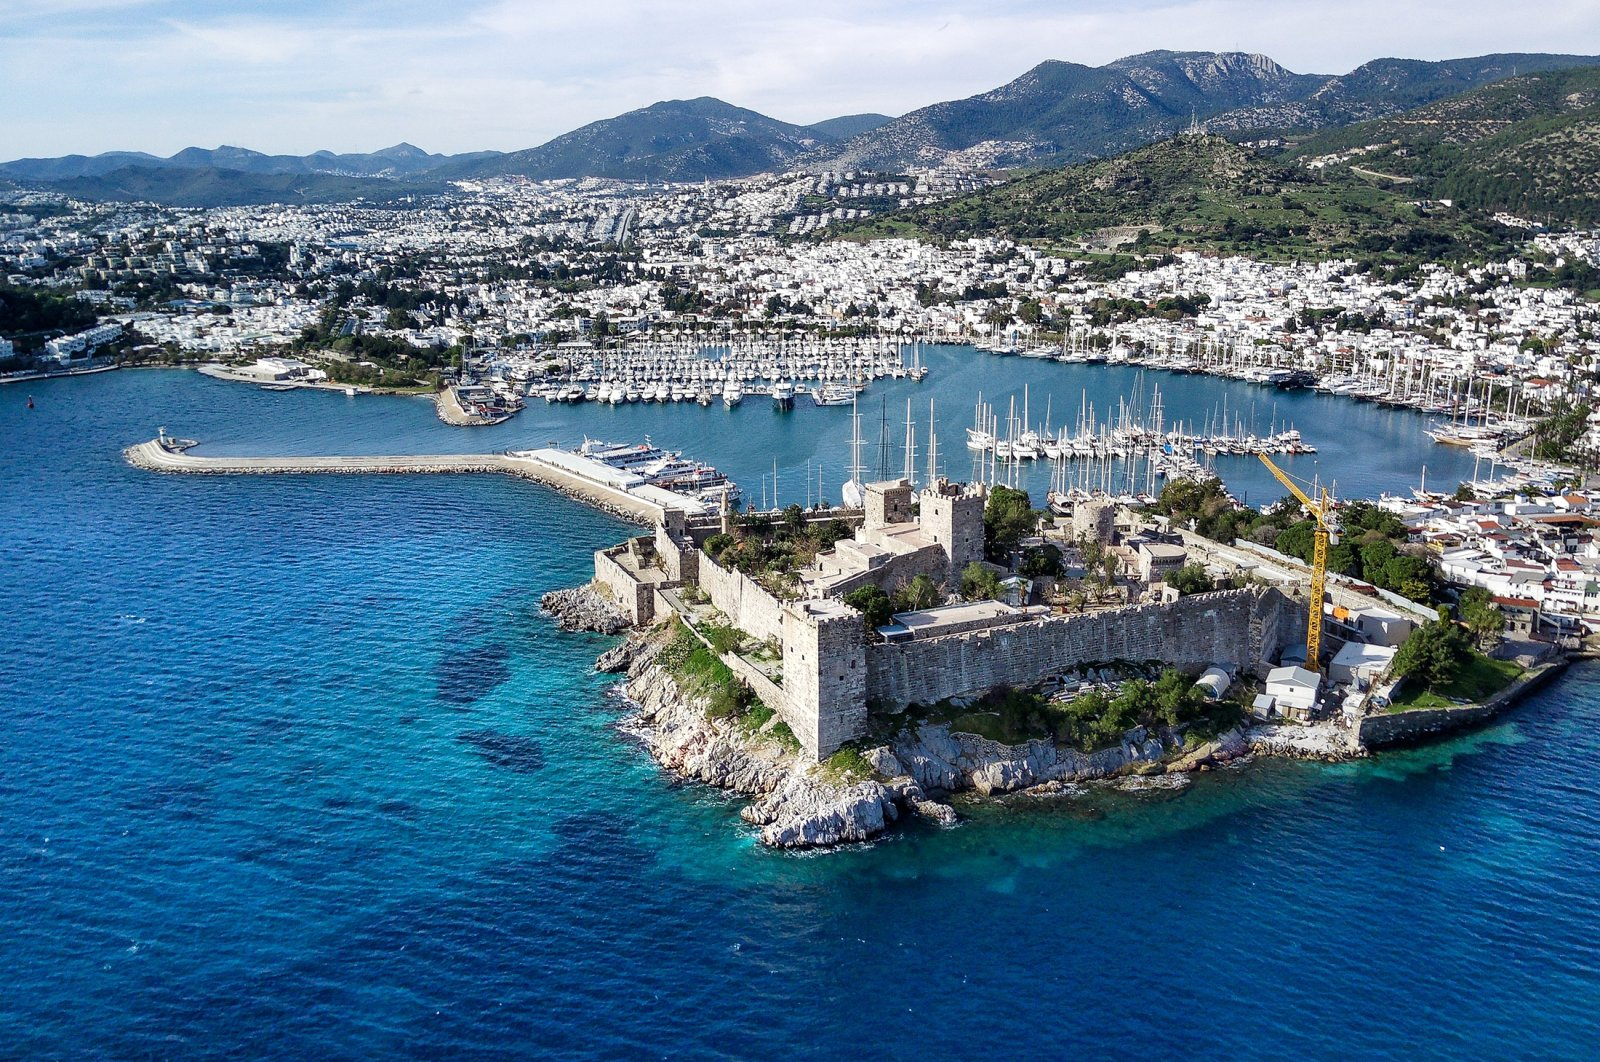 Panoramic view of Bodrum harbor and ancient castle in Muğla province. (Shutterstock Photo)